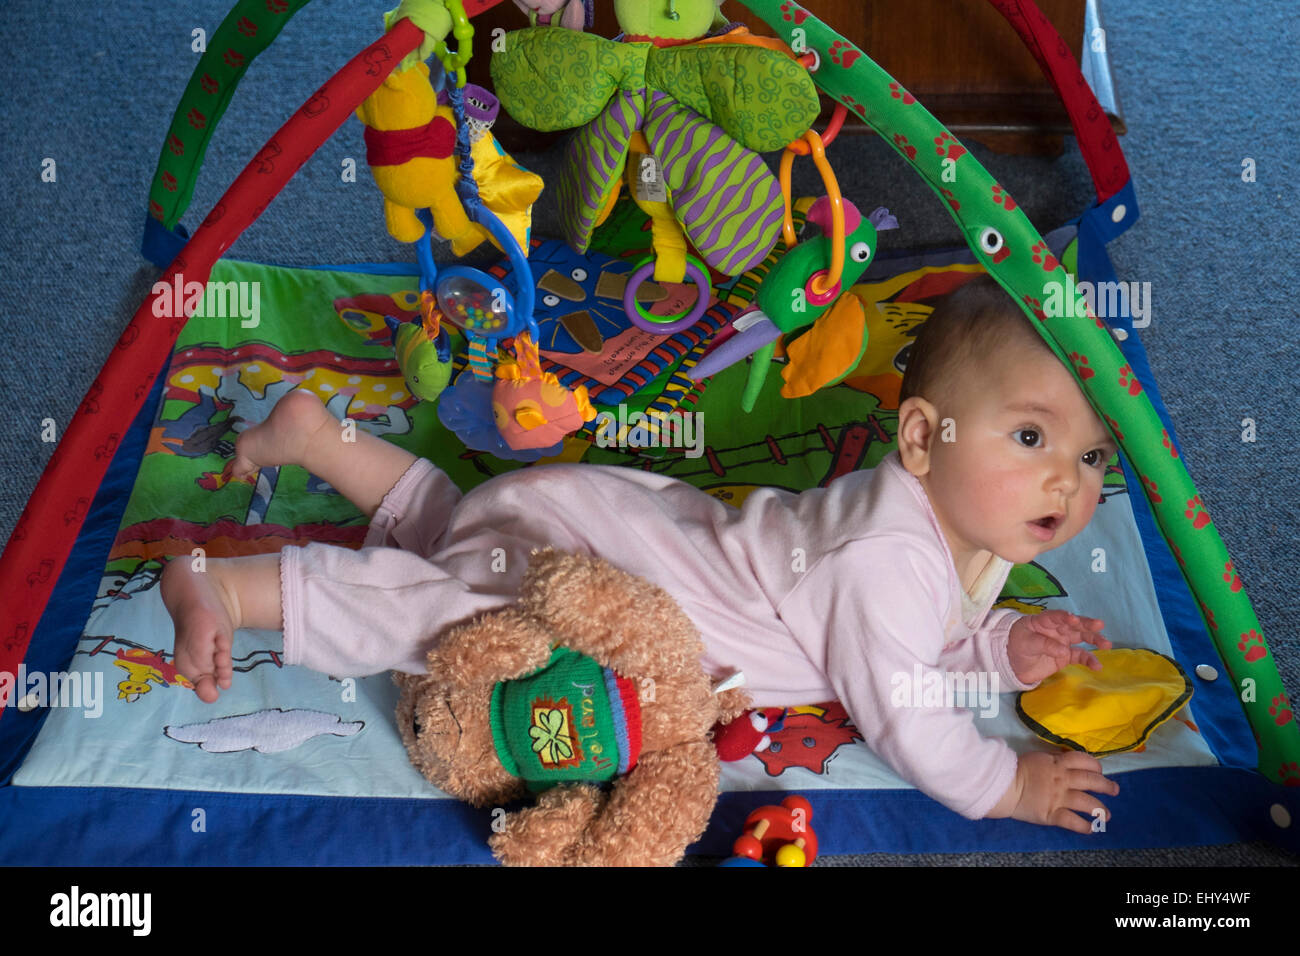 8 Month Old Baby Girl Playing On Floor With Interactive Toy Stock